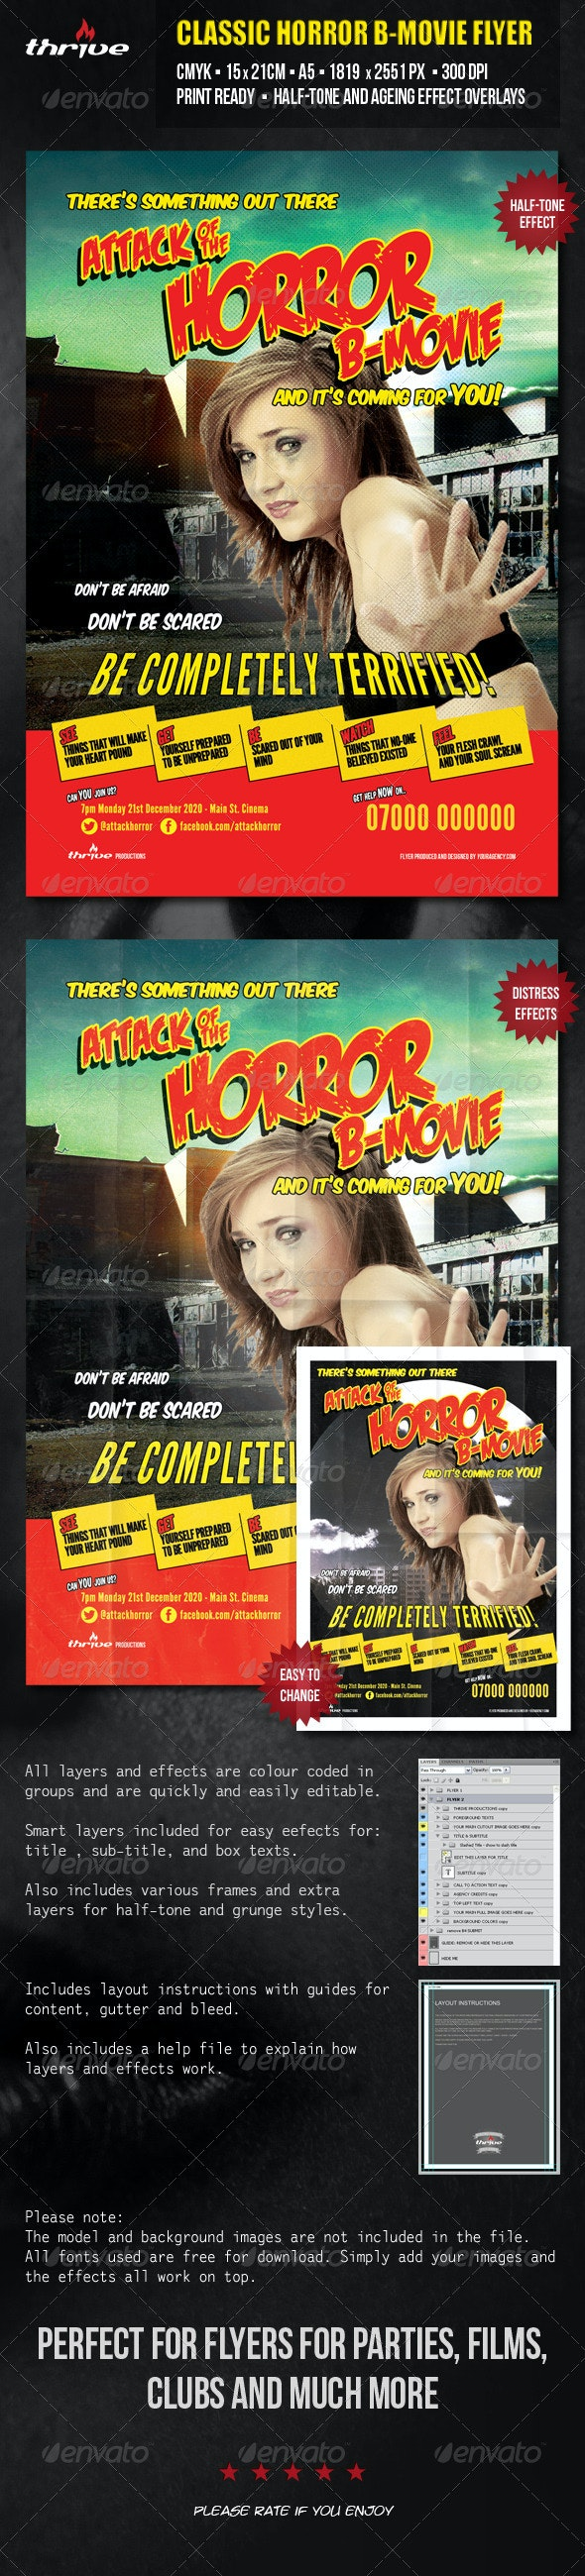 Horror B Movie Flyer - A5 - Miscellaneous Events